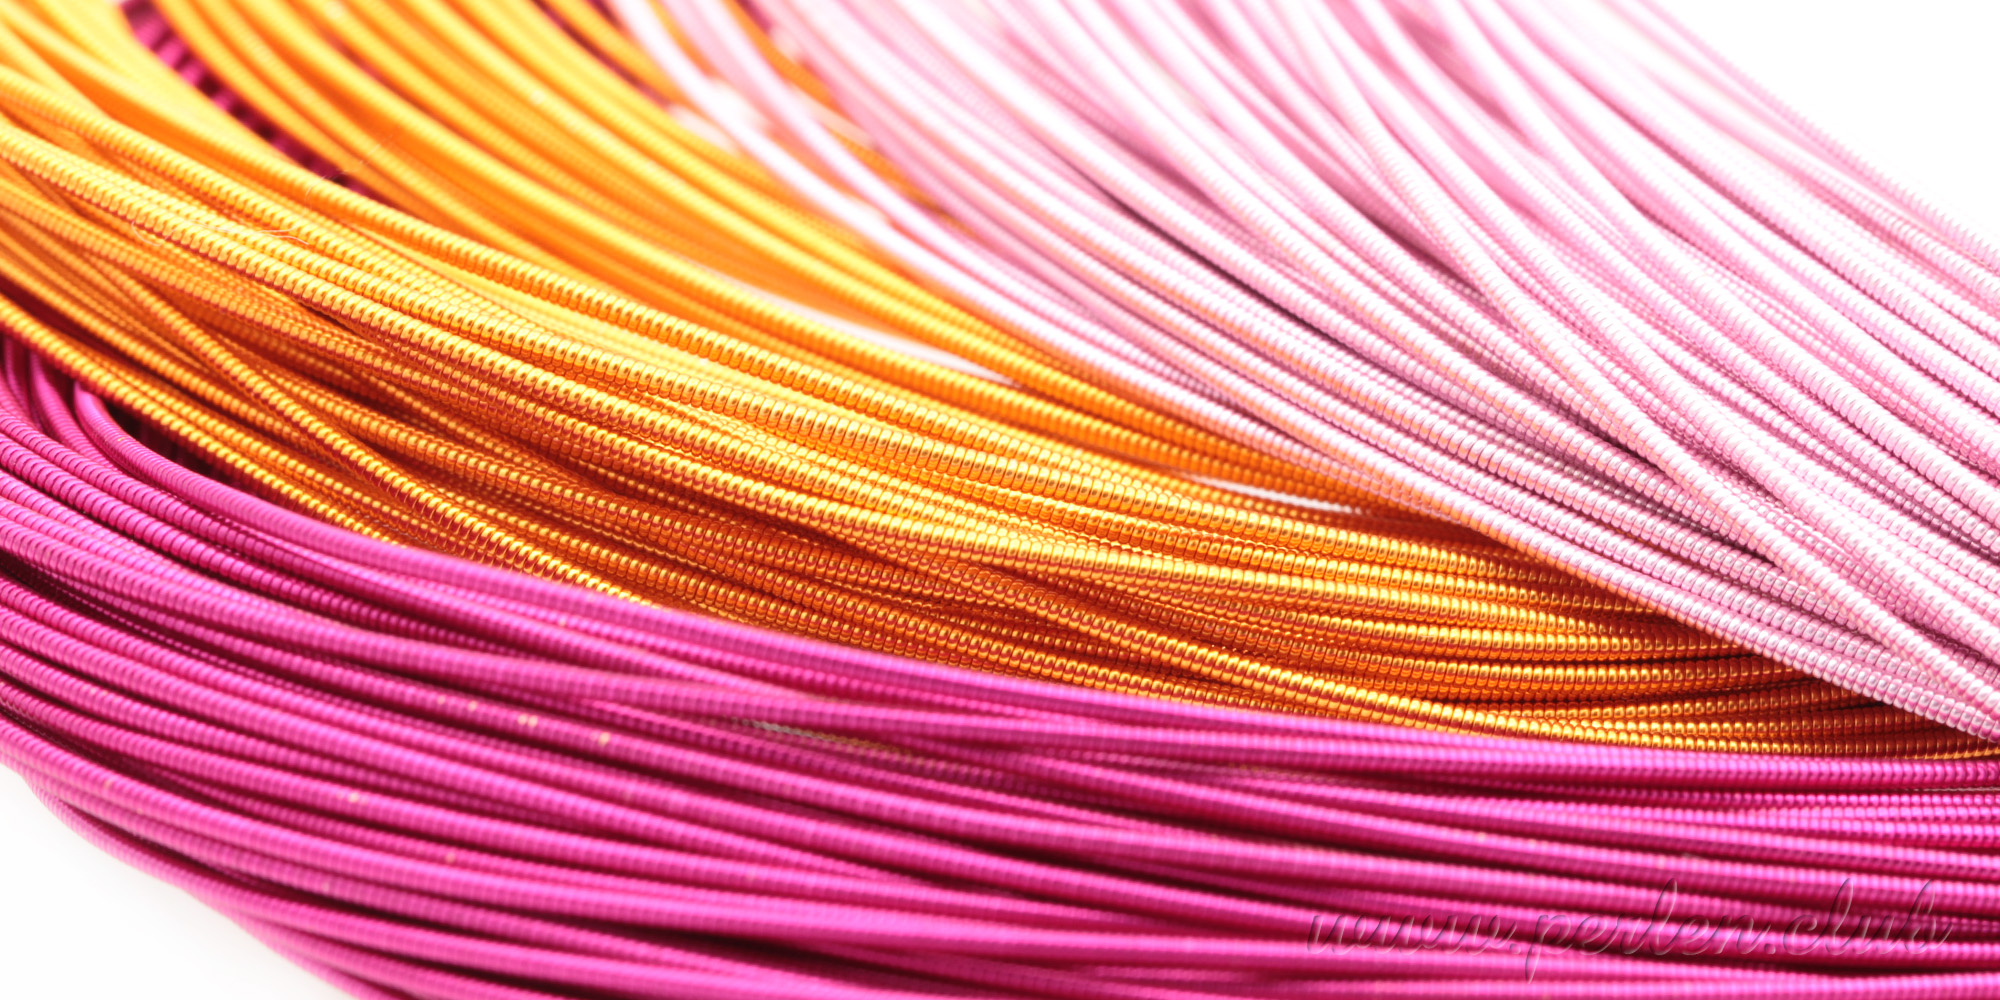 French Wire (Cannetille)